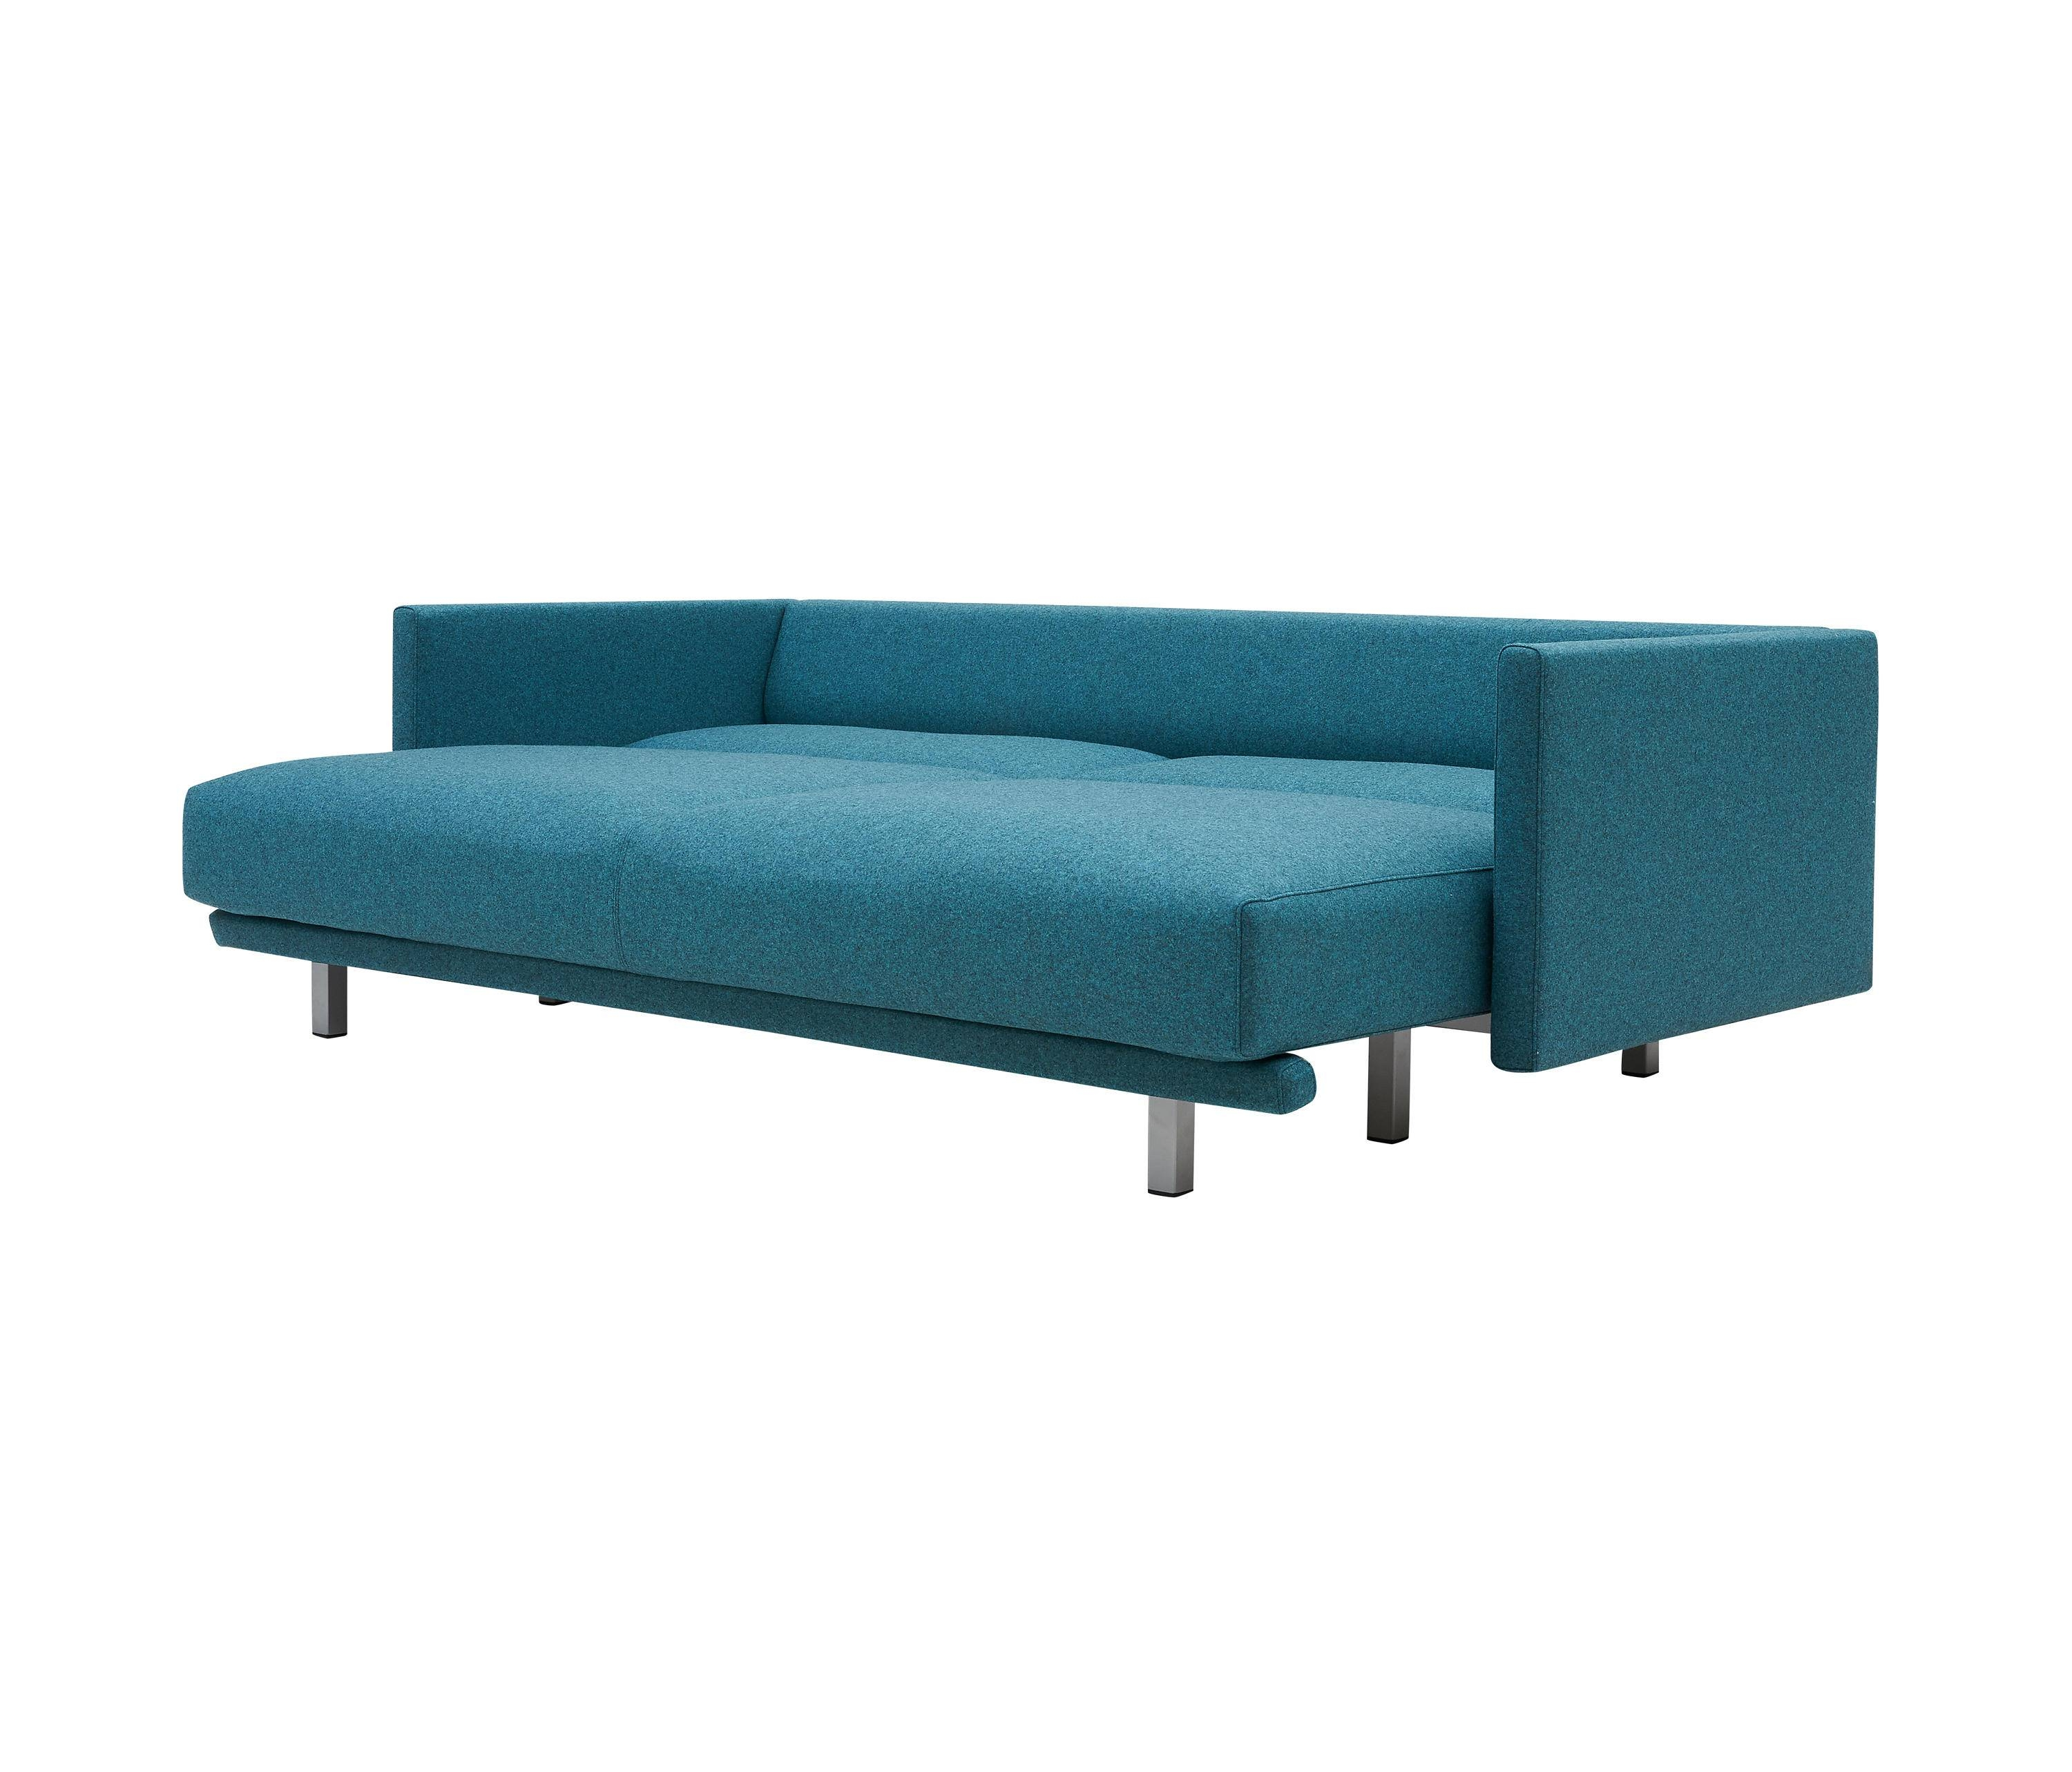 Cuba 25 - Sofa Beds From Cappellini | Architonic intended for Aqua Sofa Beds (Image 10 of 30)